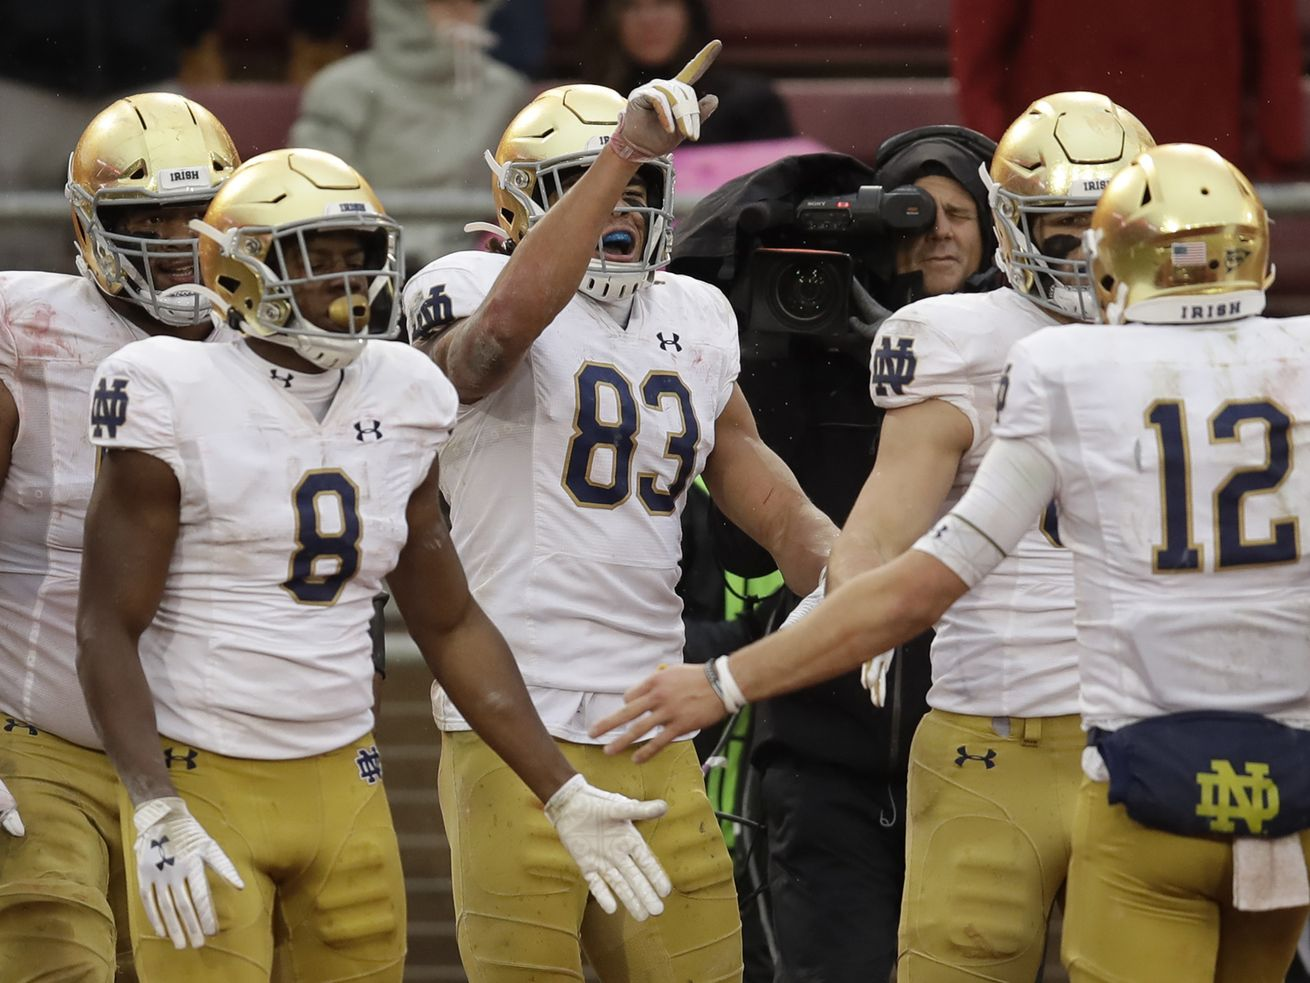 Notre Dame-Wake Forest football game is rescheduled for Dec. 12